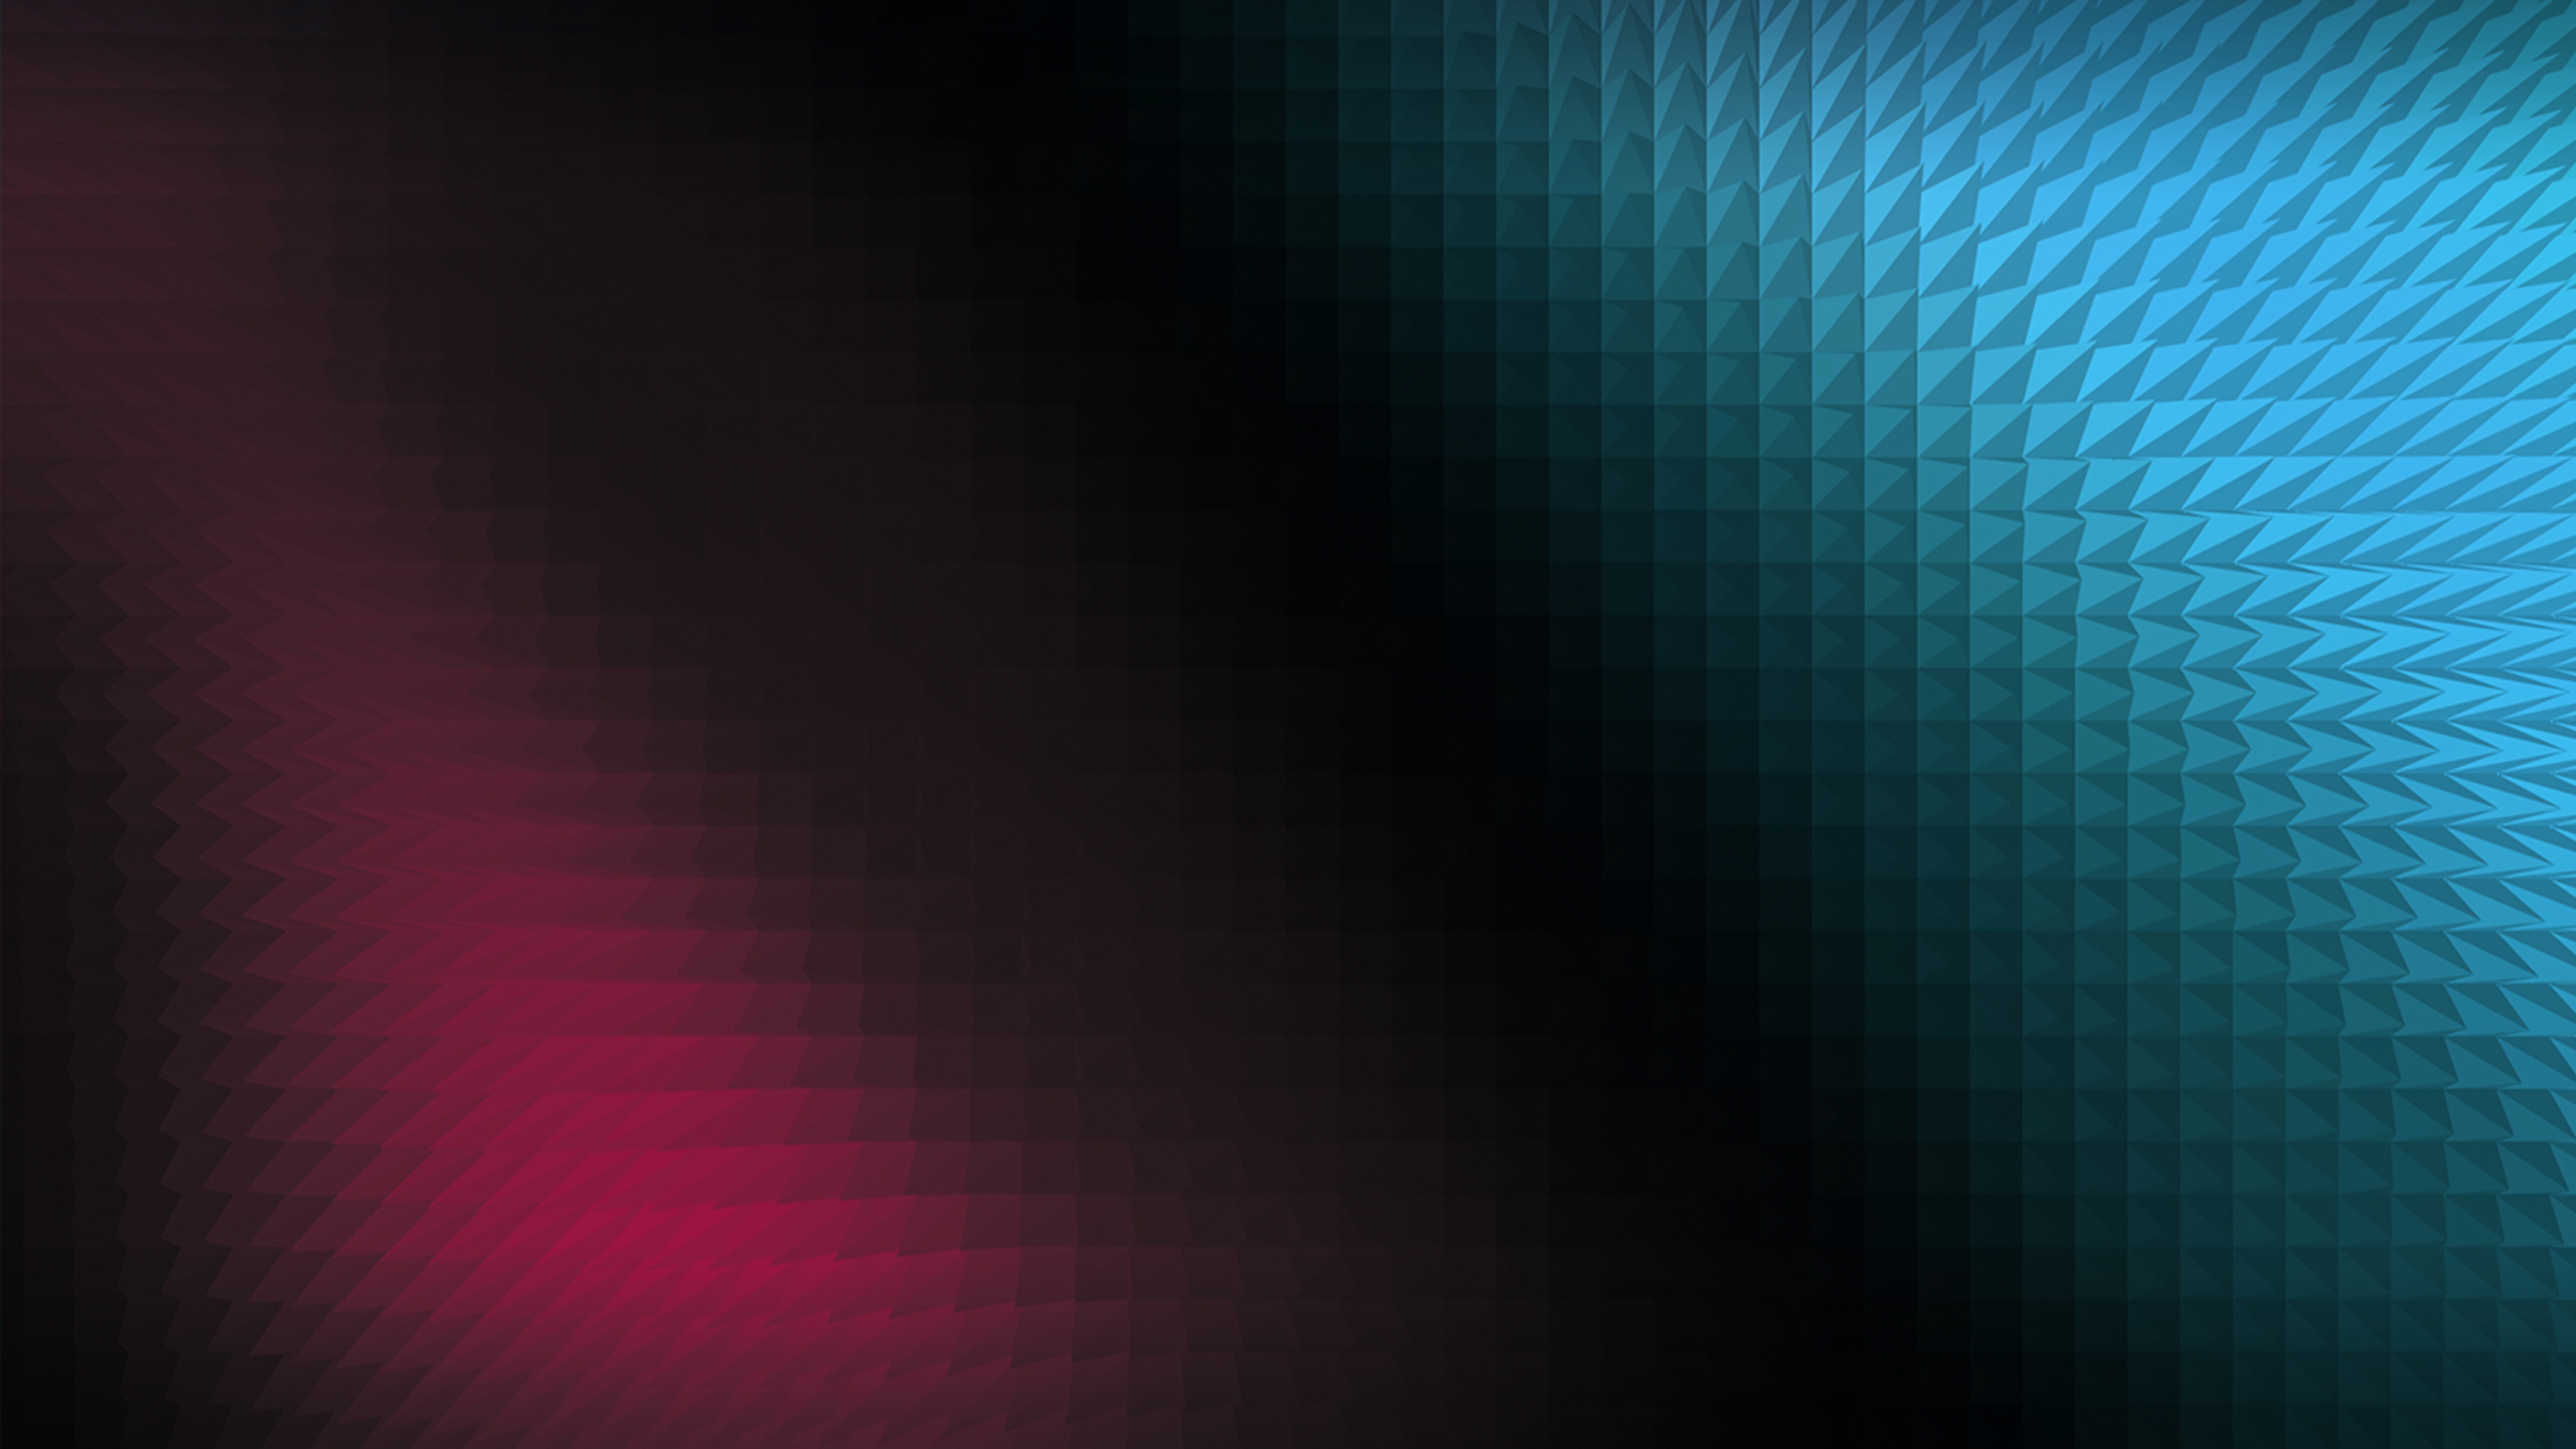 Wallpaper 4k Pyramid Gradient Light Flares 4k Wallpapers